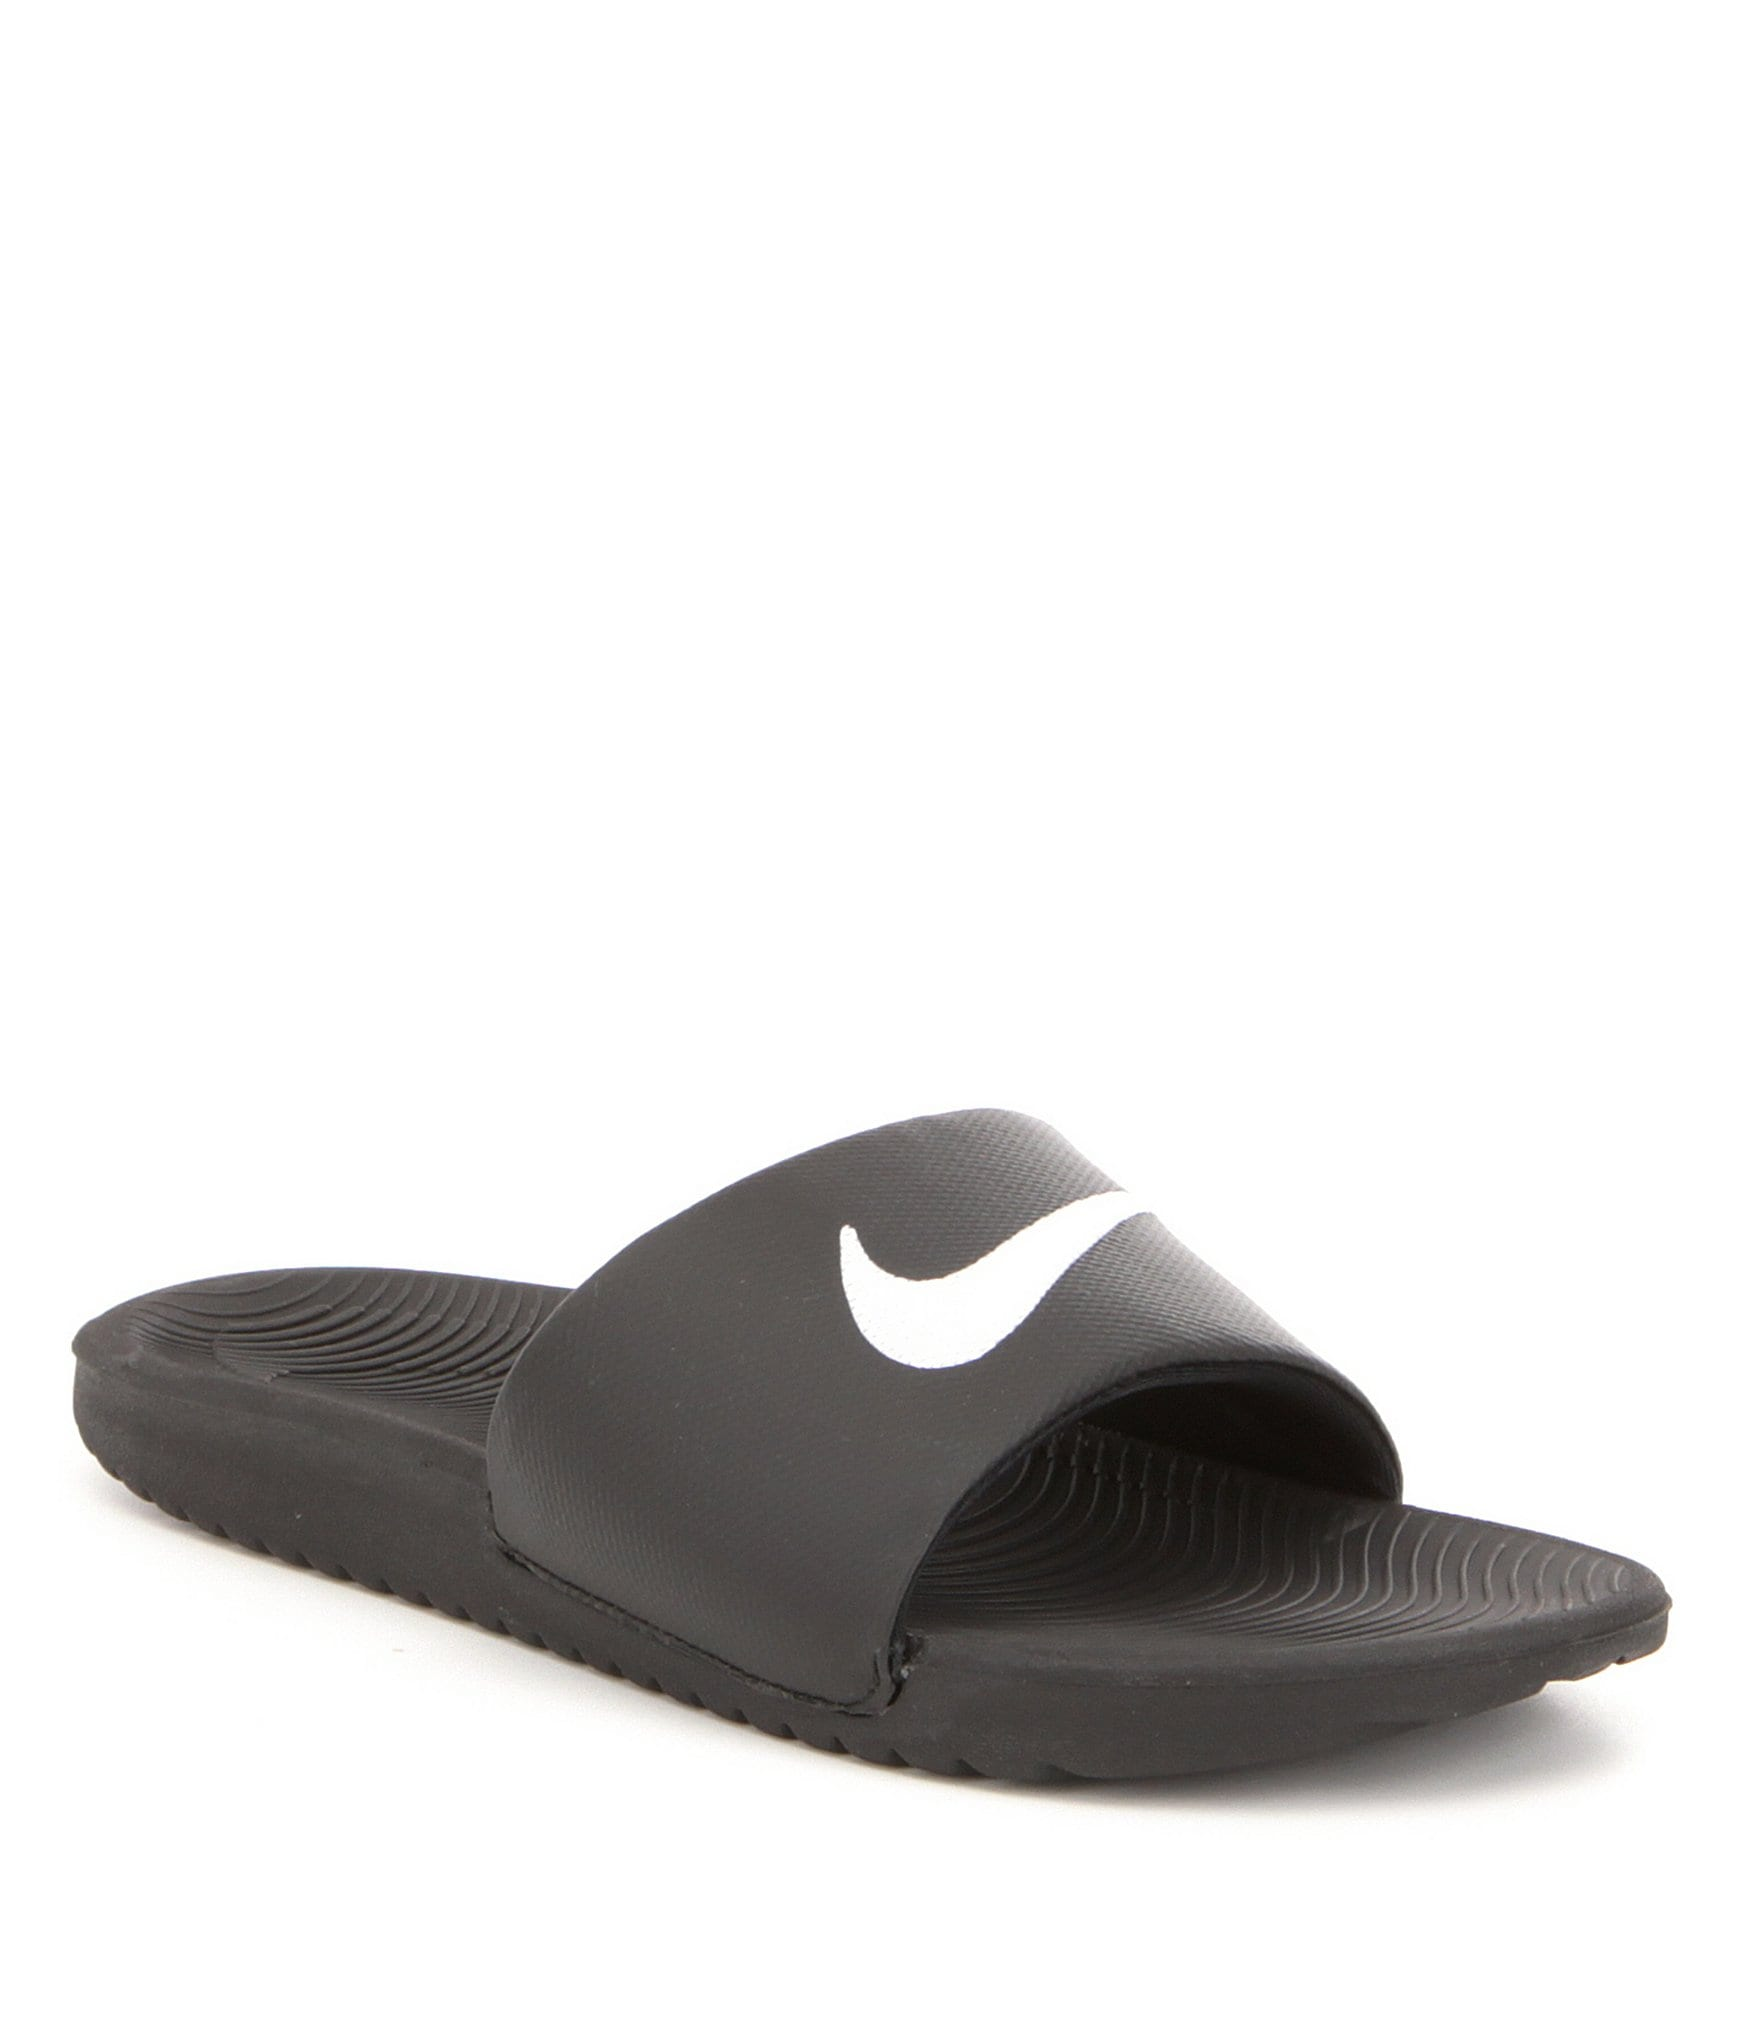 635430c9c7c5 Nike Men s Kawa Synthetic Cushioned Sole Slide On Banded Sandals ...